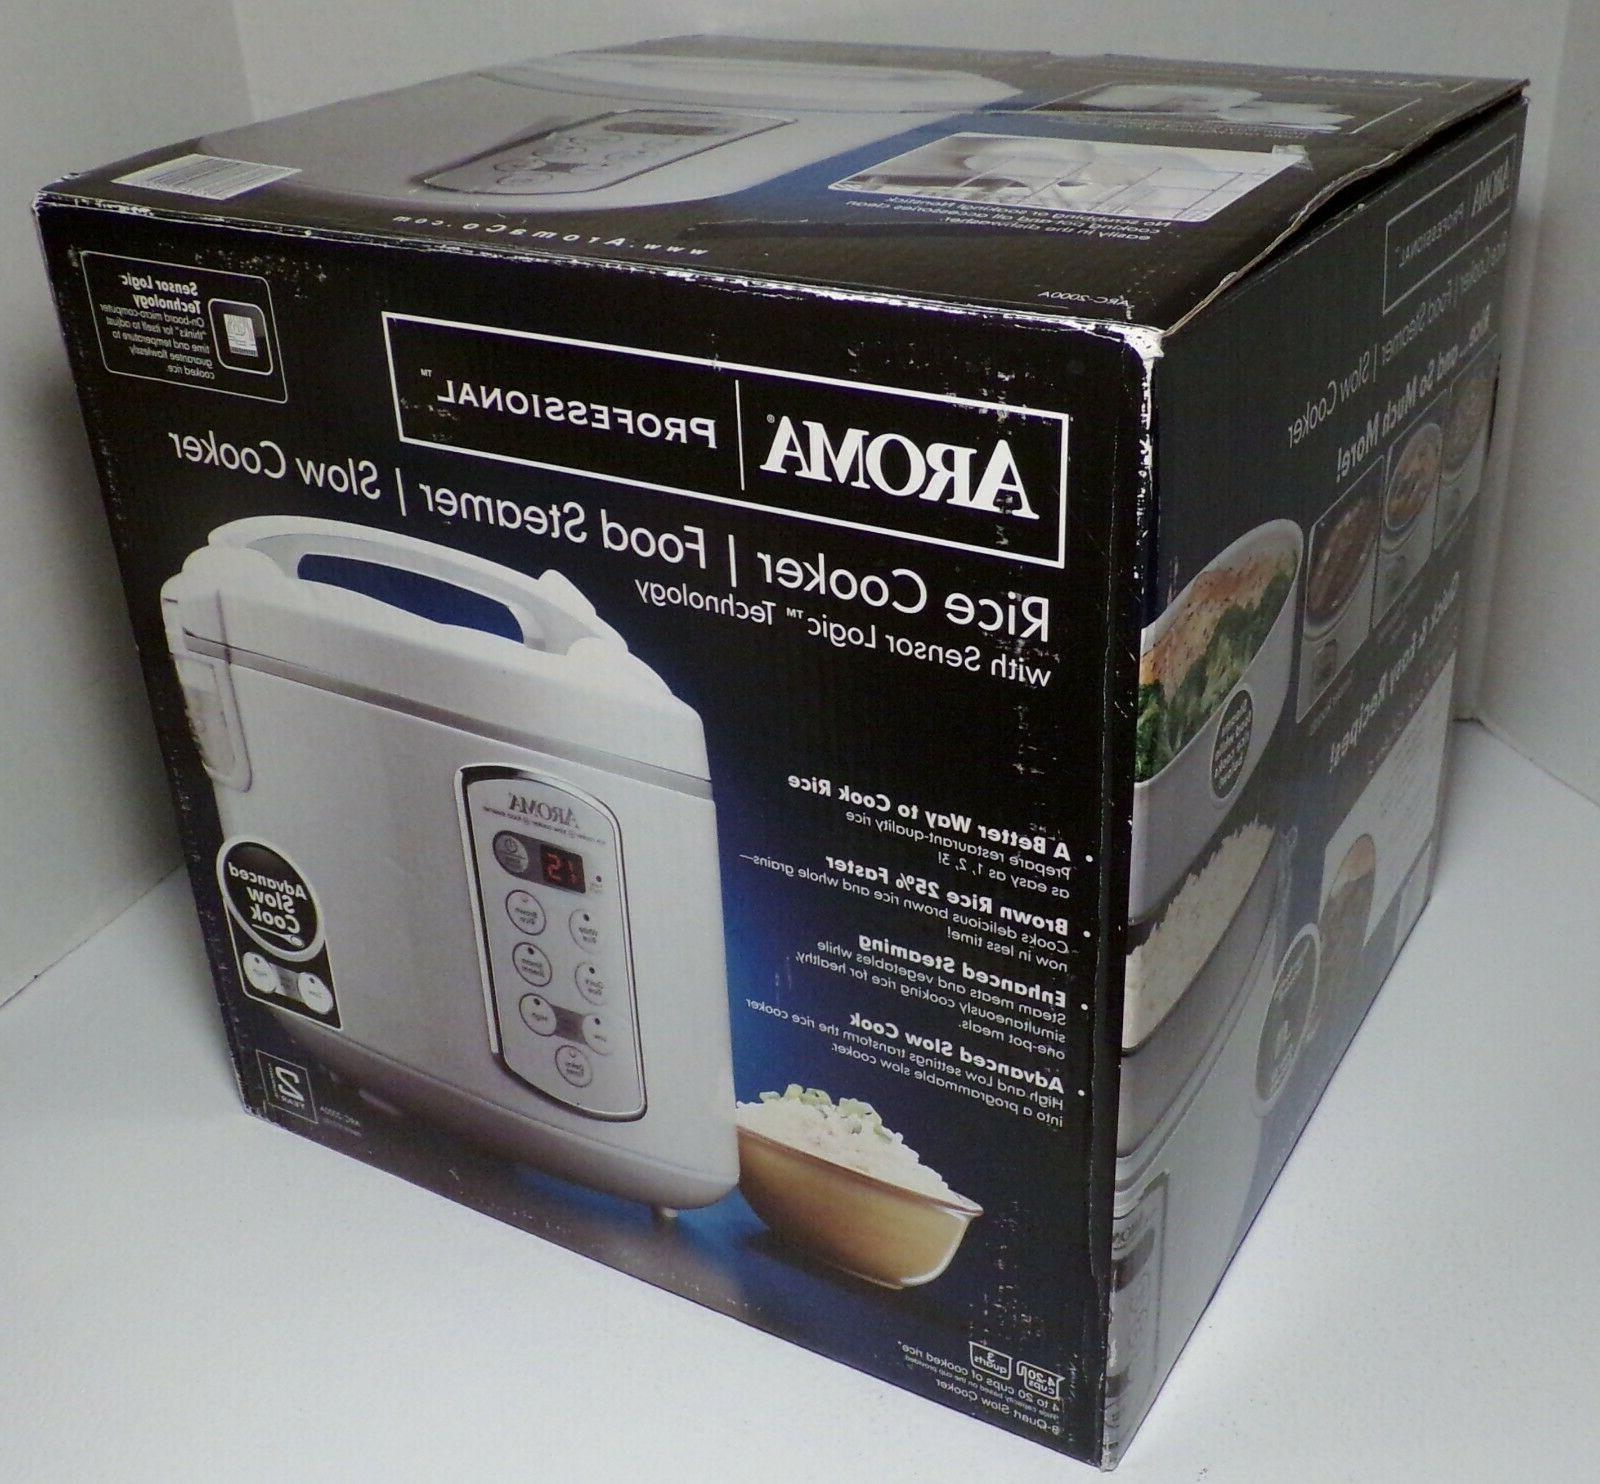 AROMA PROFESSIONAL Rice Cooker Slow Cooker Steamer 20 Cup Wh